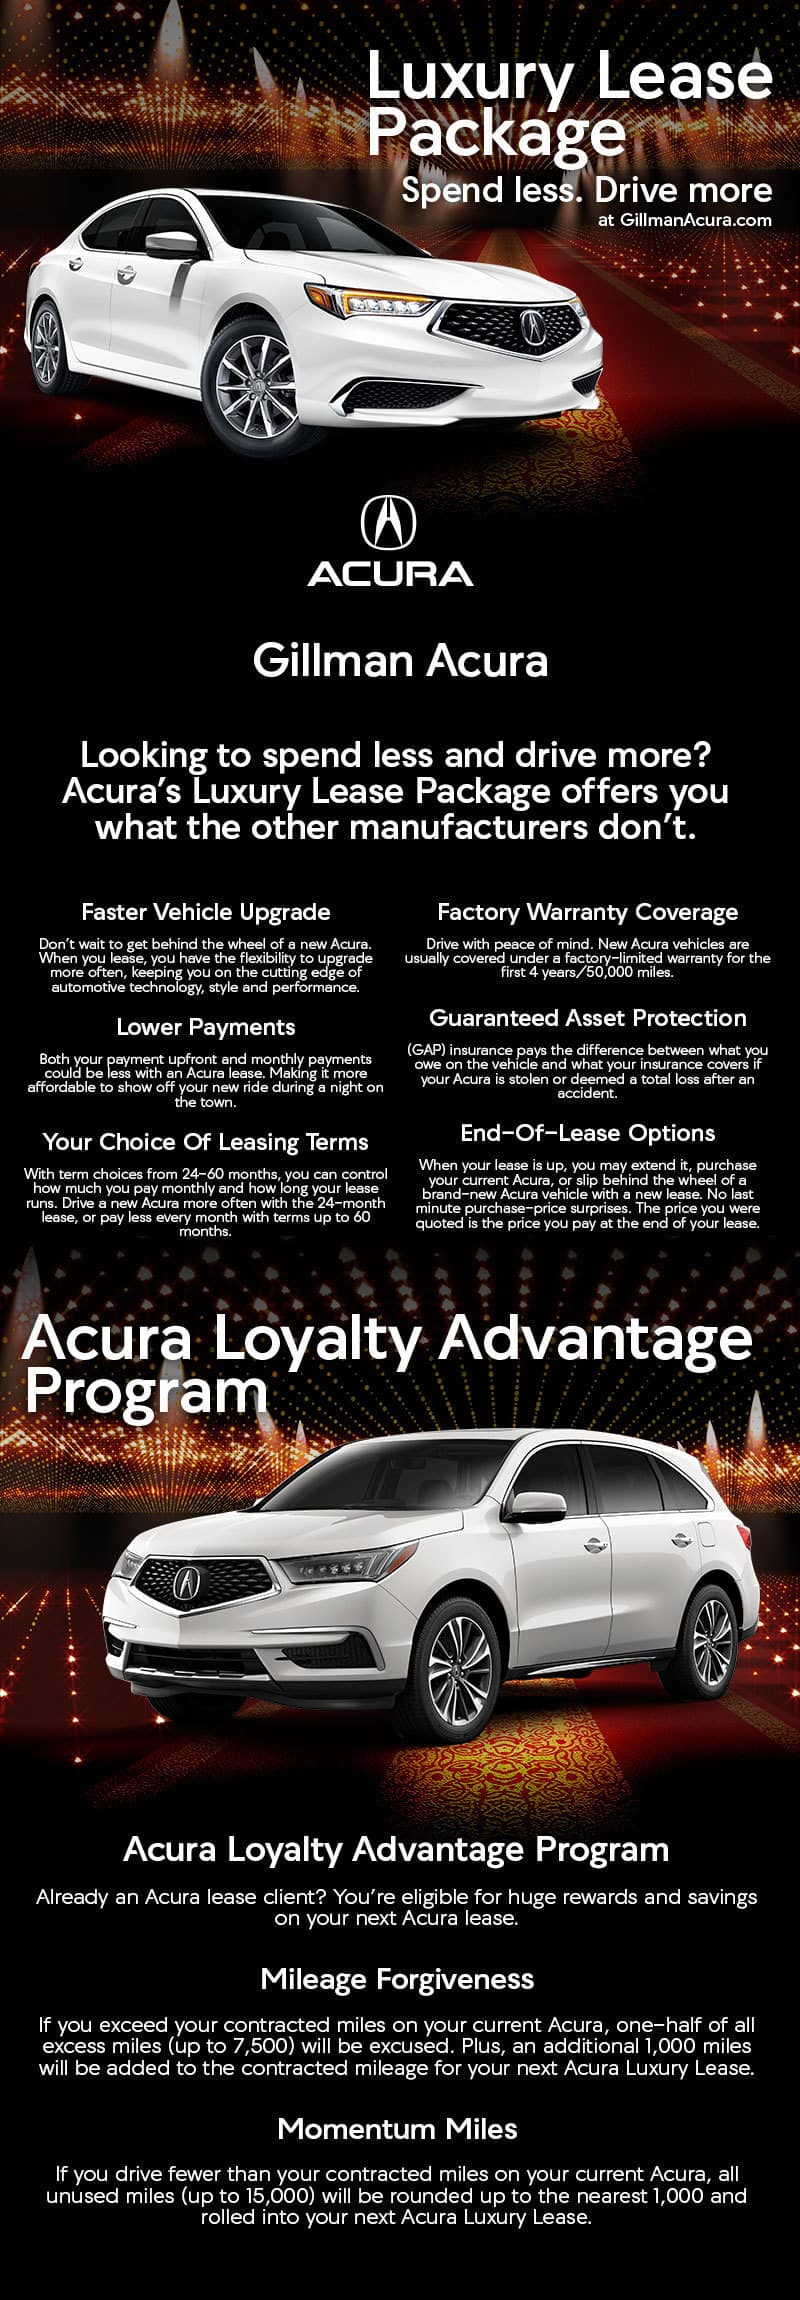 Loyalty Advantage Program